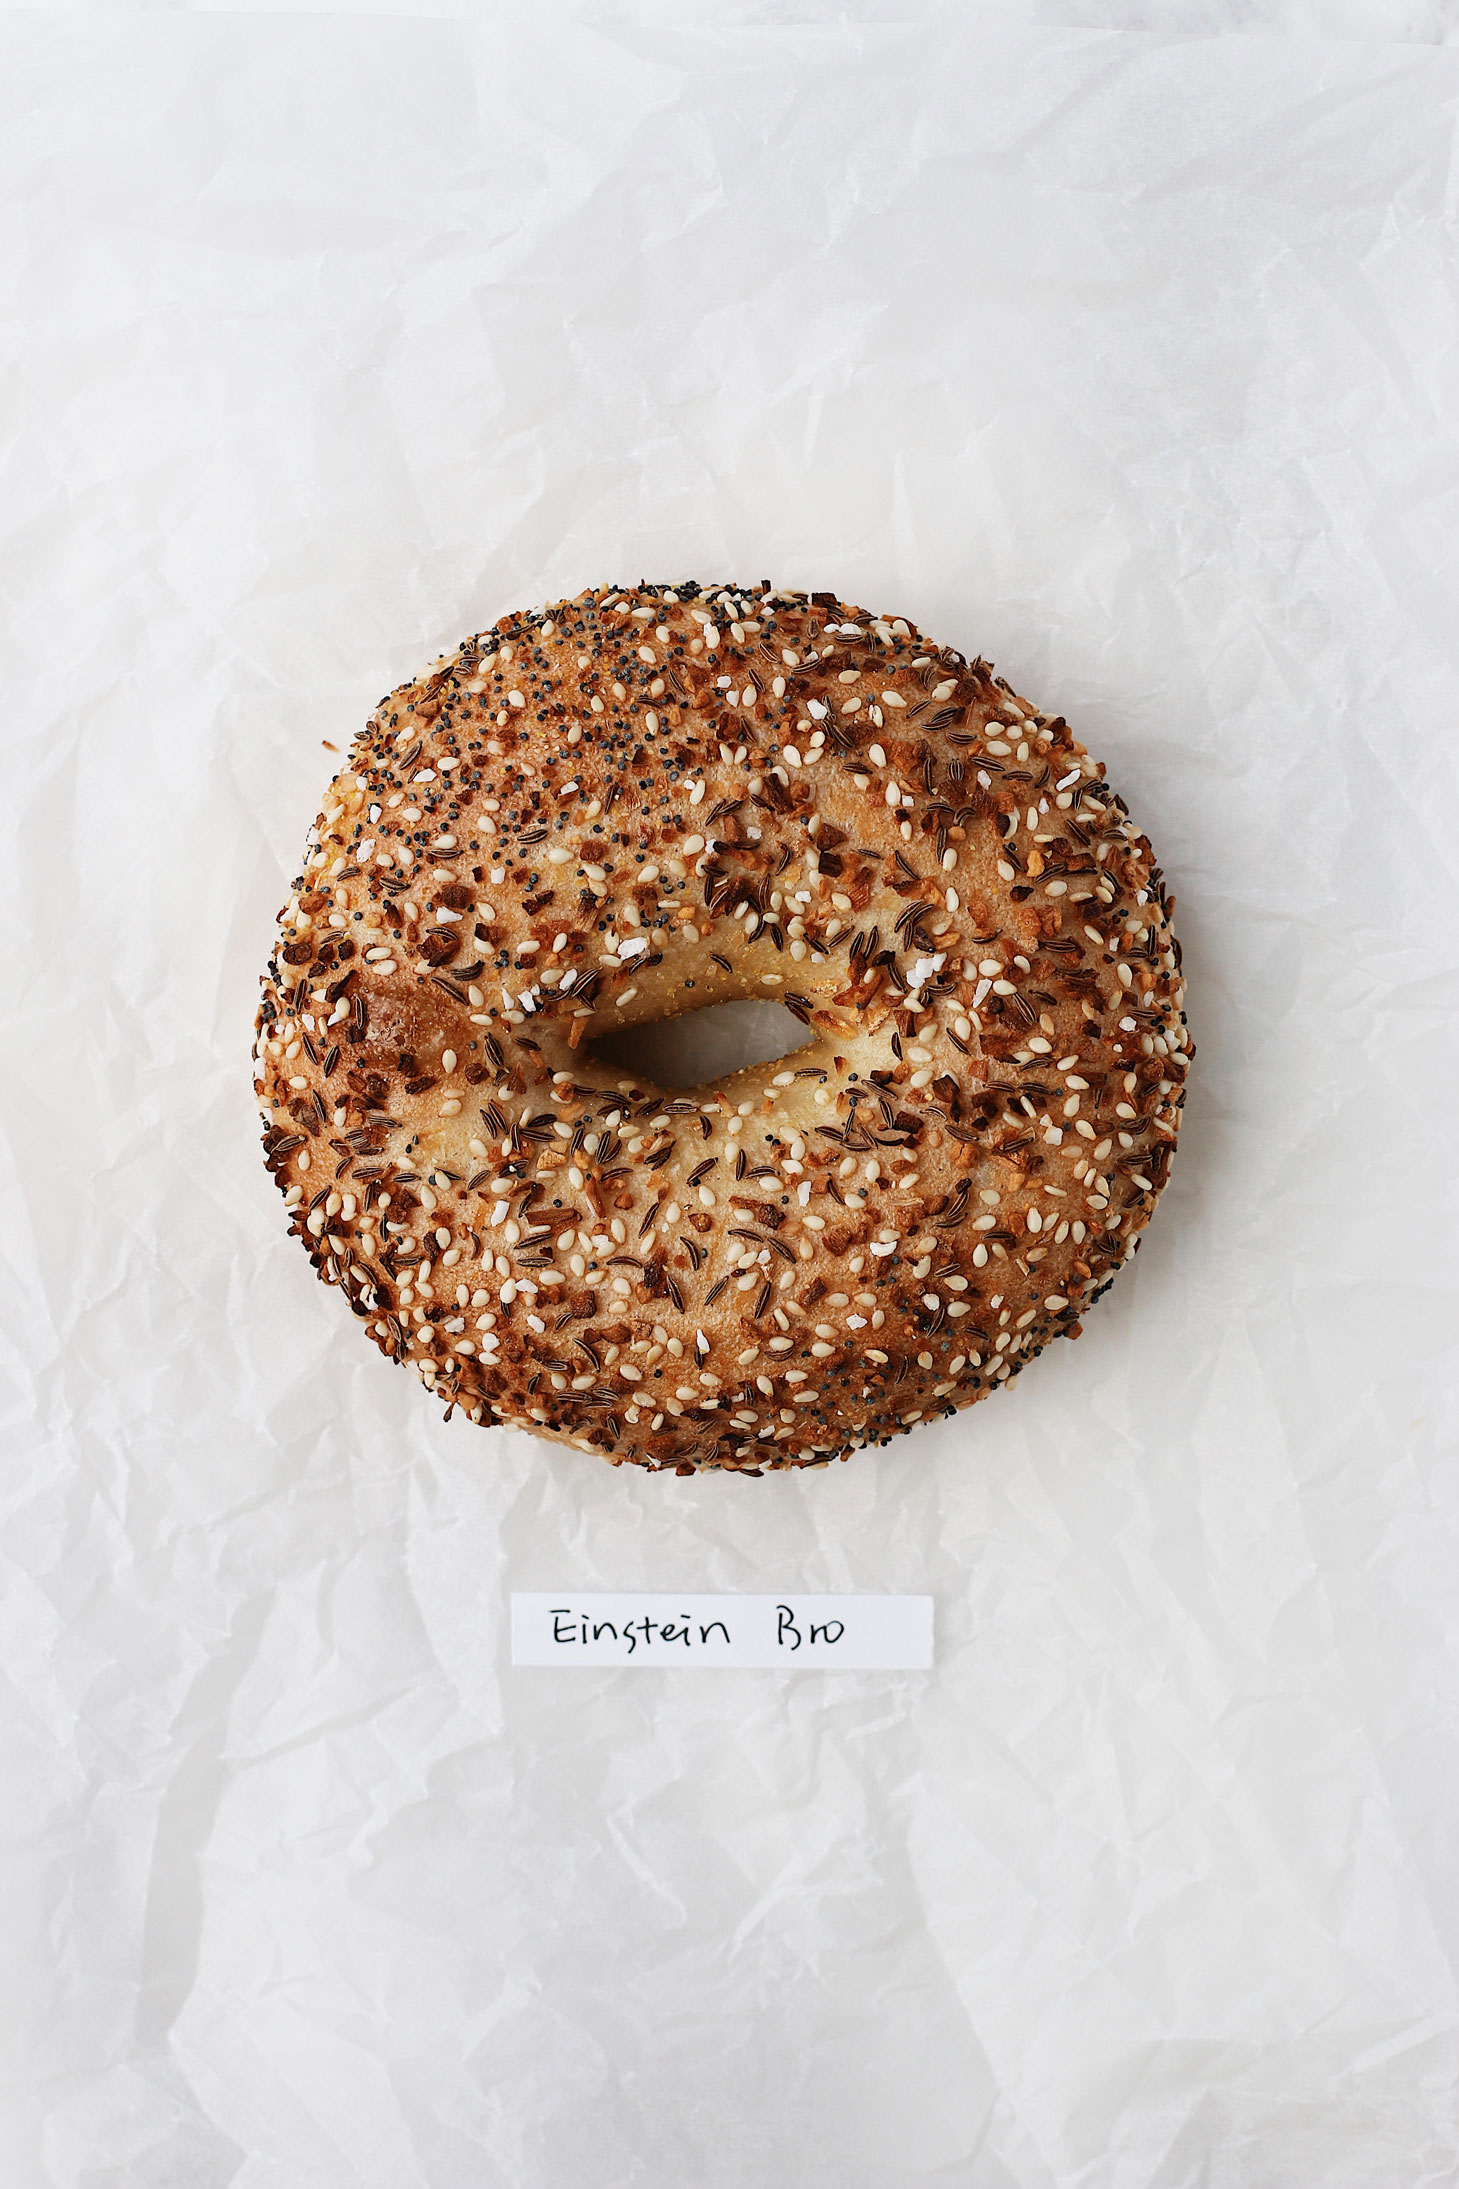 best-bagel-in-seattle-great-bagel-off-einstein-bro-everthing